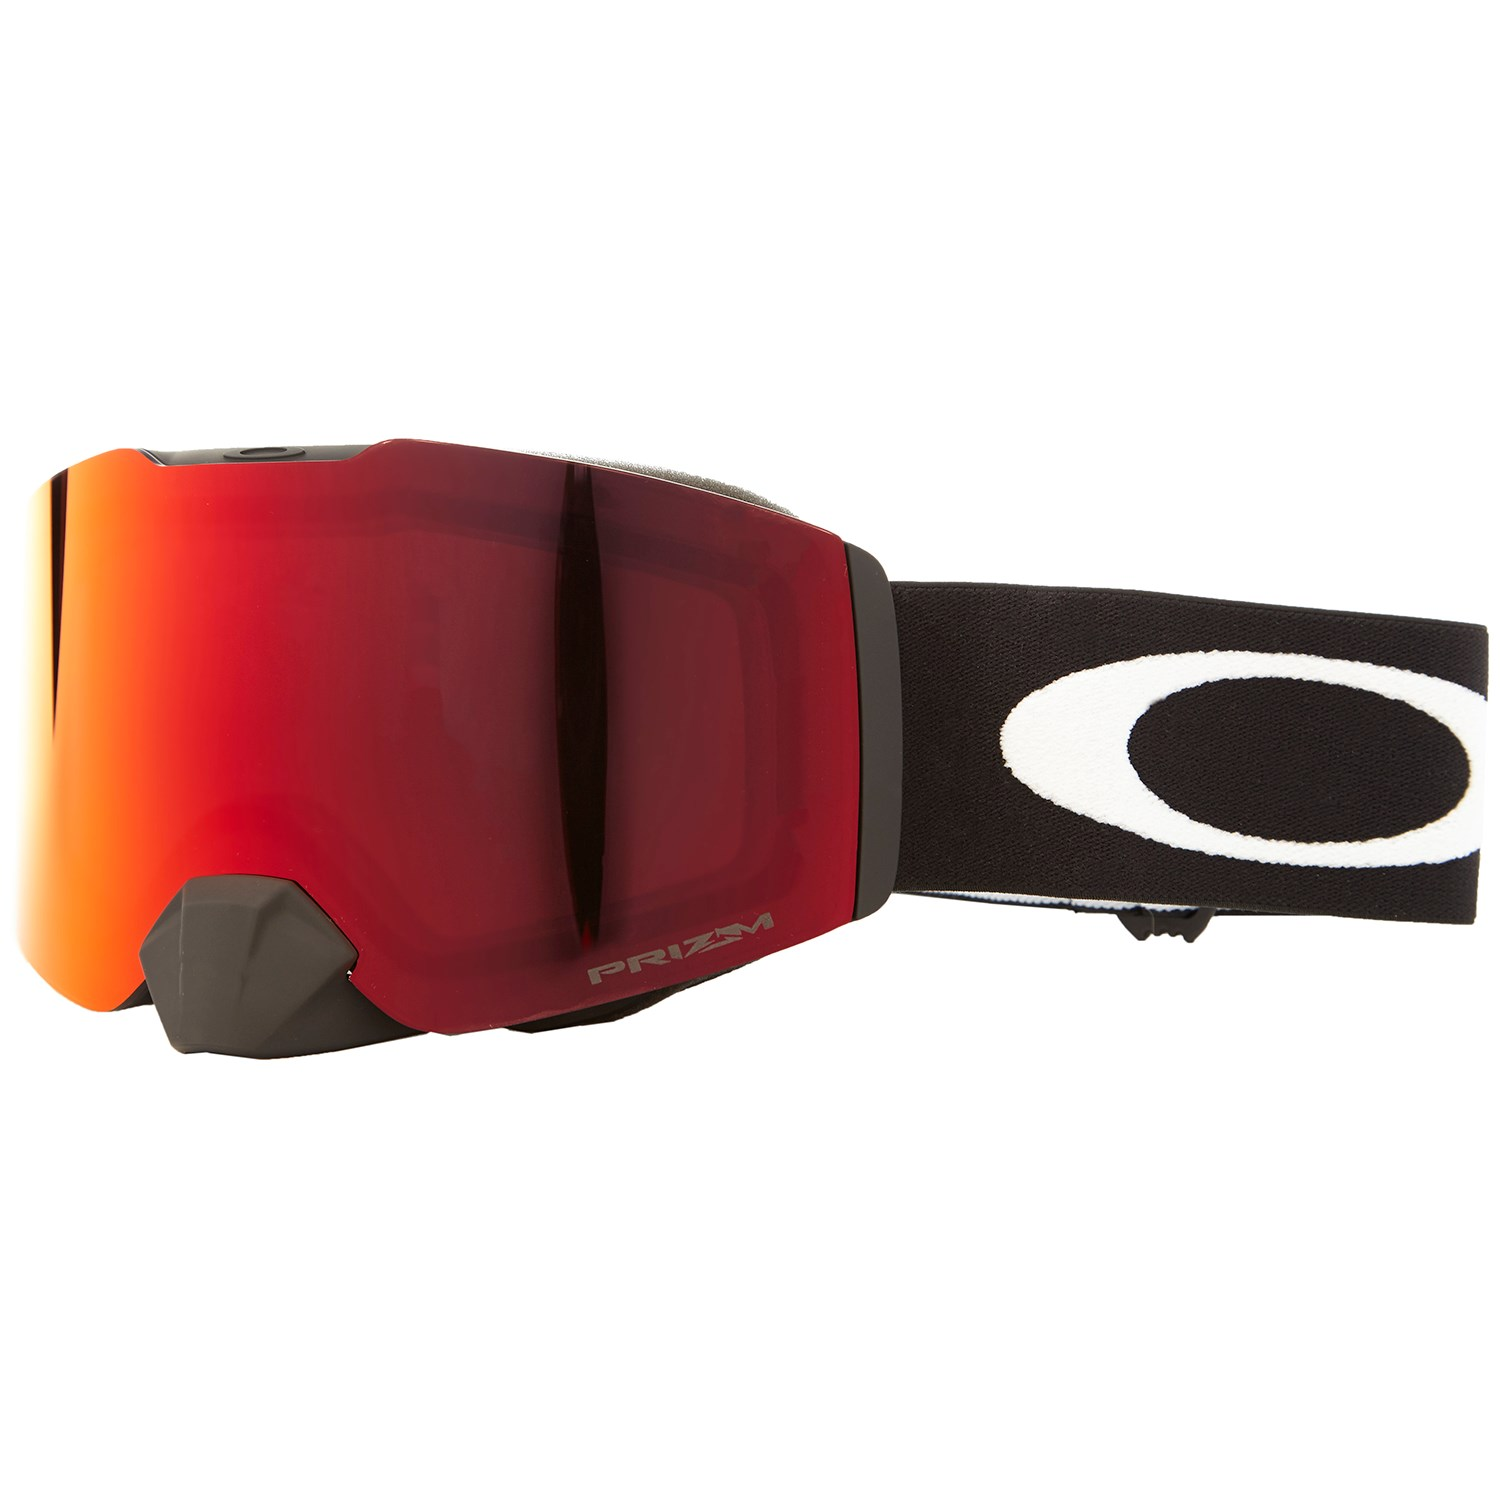 7d878c79ea Oakley Fall Line Asian Fit Goggles